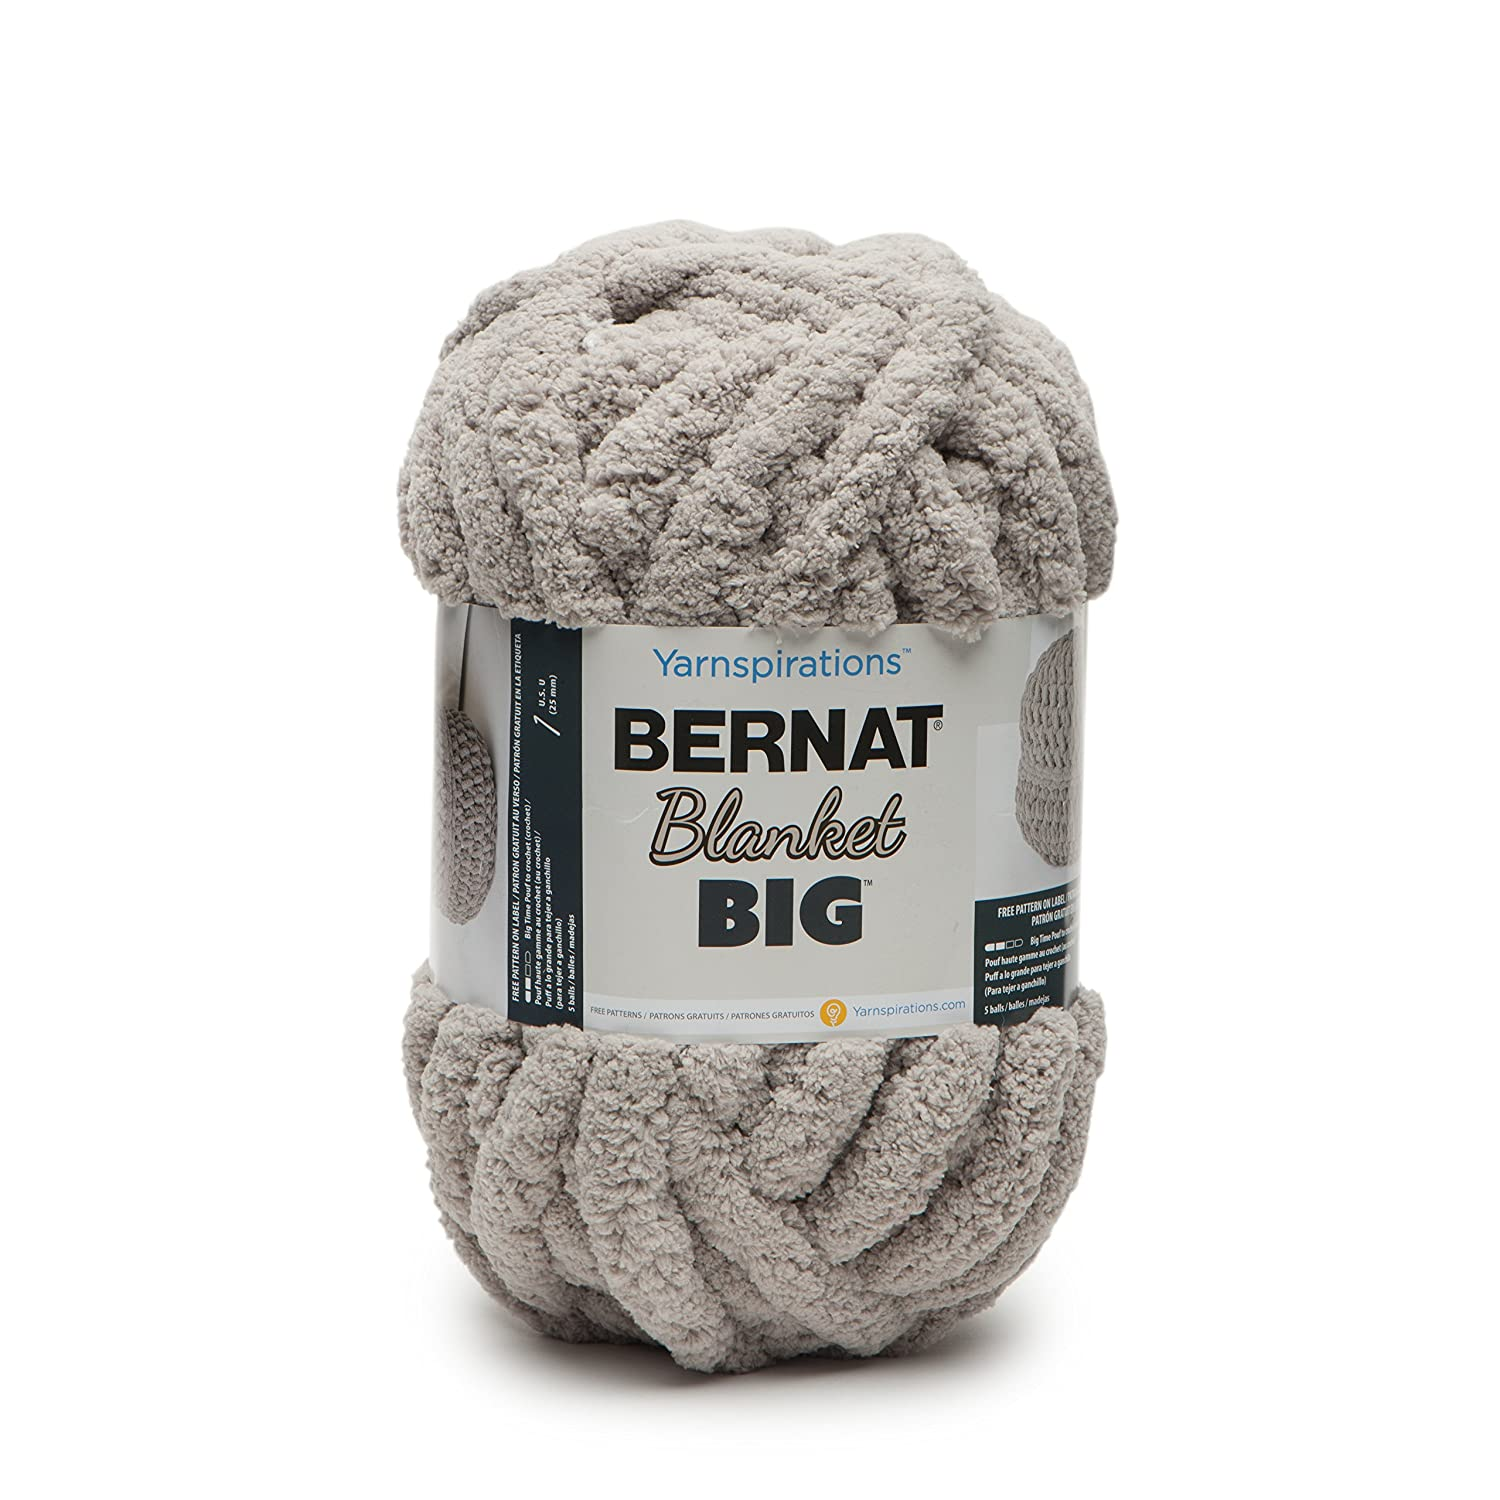 Bernat Blanket Big, All Colours, By WOOLEXPRESS, 161251 (Pale Grey ...